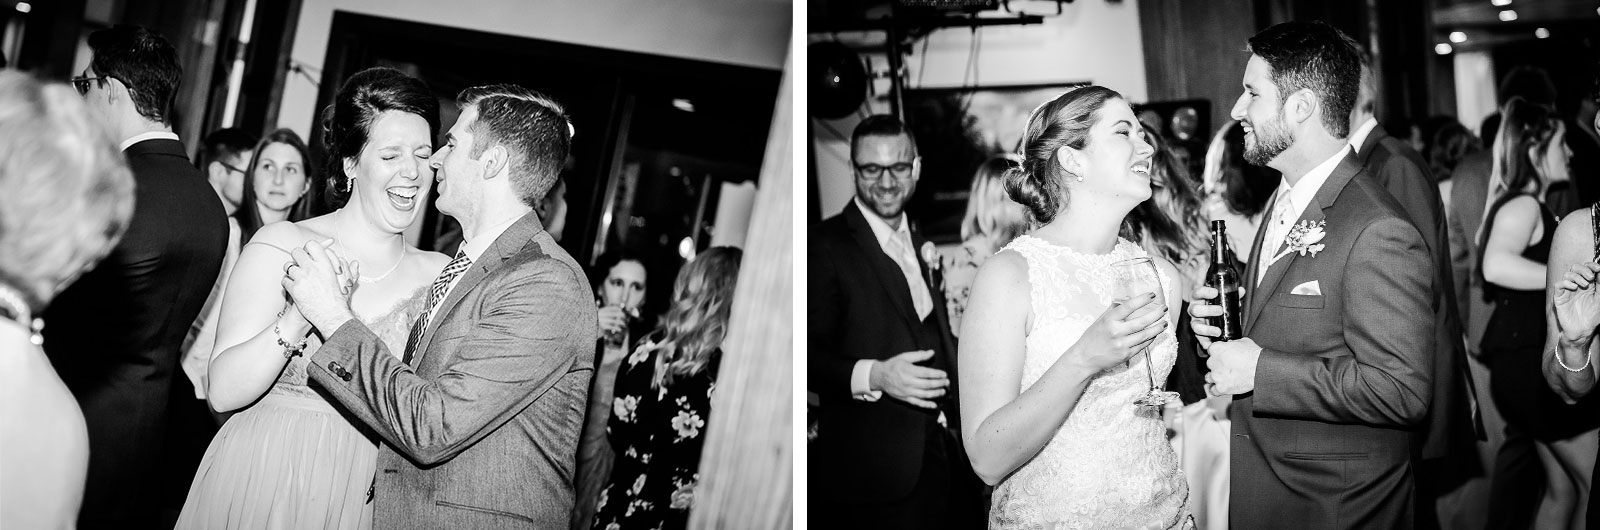 Eric_and_Christy_Photography_Wedding_A&C-69-70